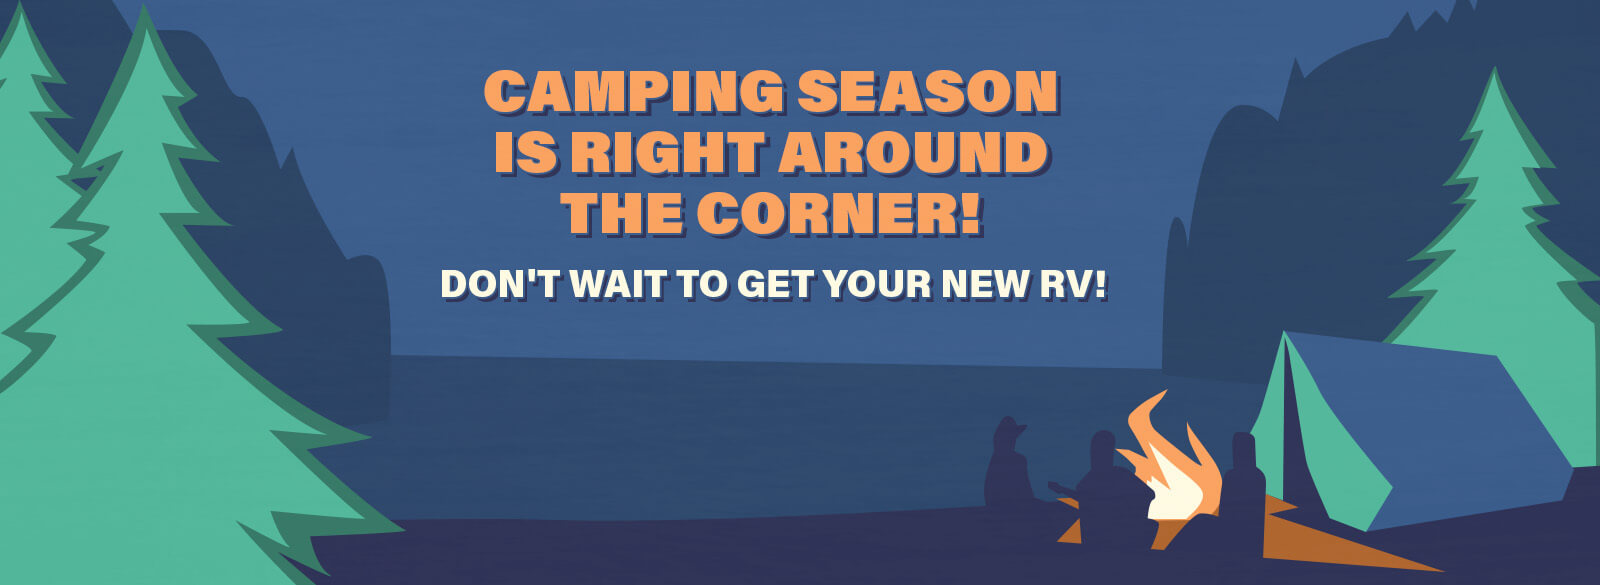 TriAm_CampingSeason_Banner_020520.jpg